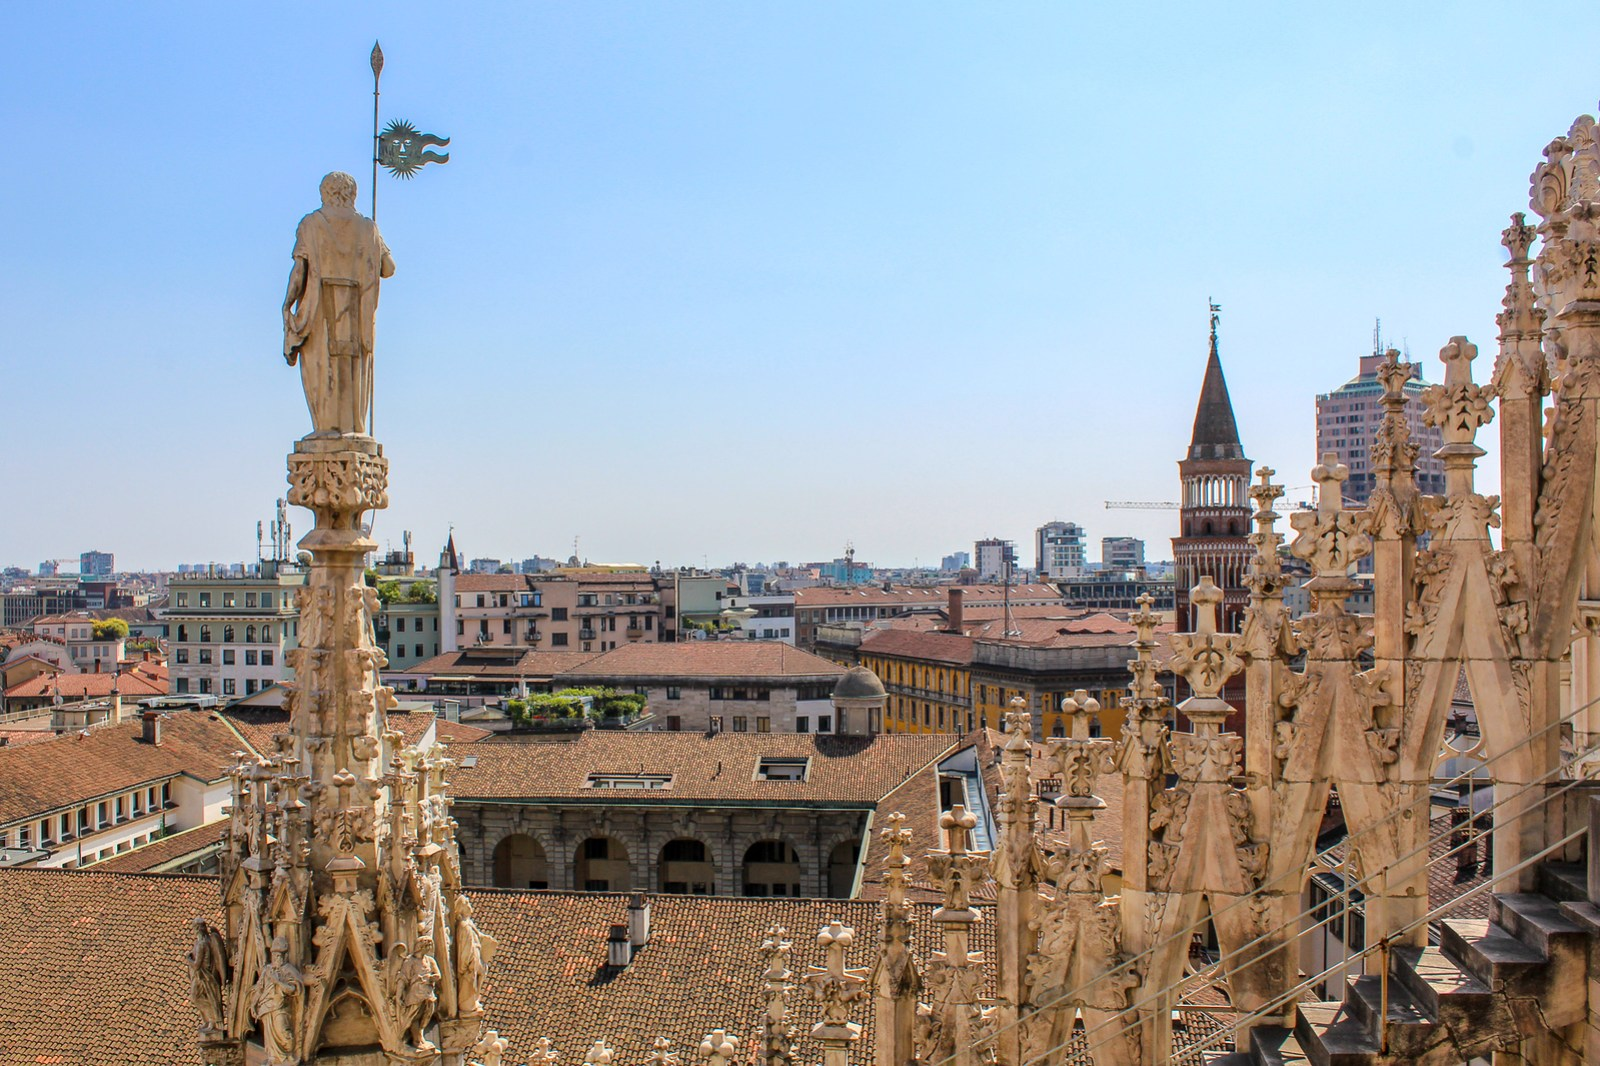 is milan worth visiting? for this view? absolutely!